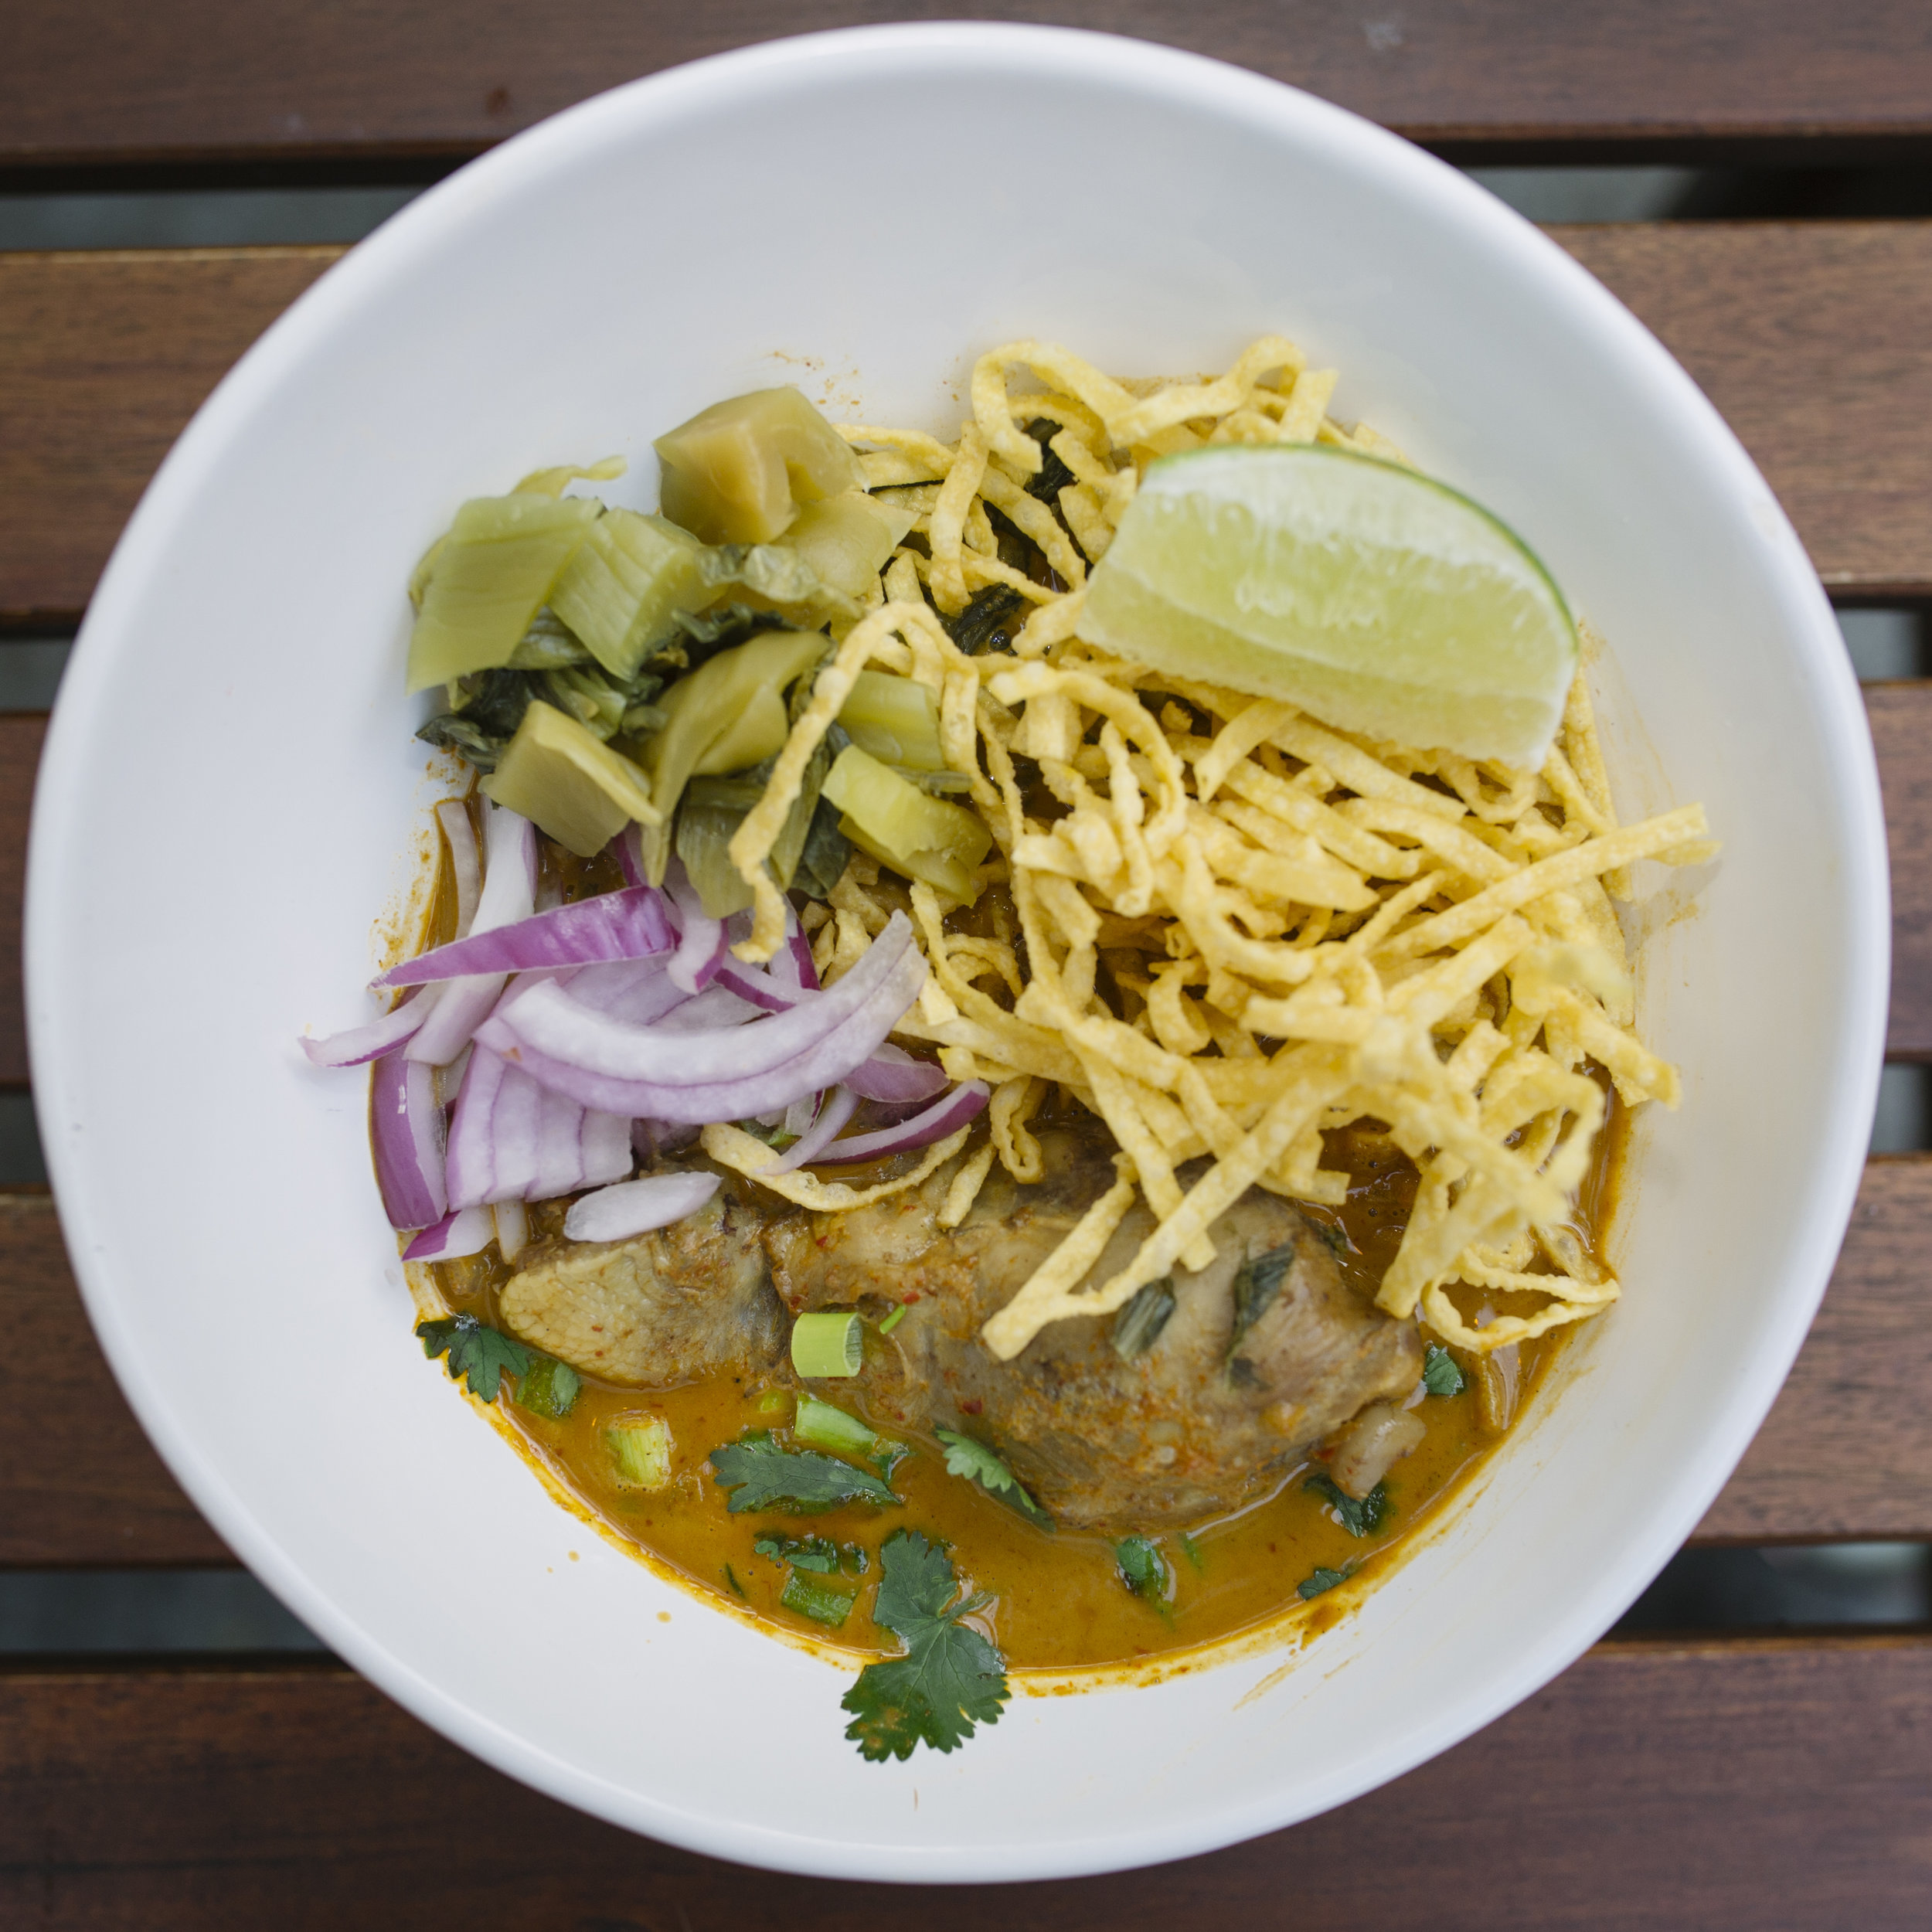 Kao Soi - Egg noodles with chicken or vegetables simmered in curry soup, topped with crispy egg noodles, pickled mustard greens, red onions, lime, and chili oil